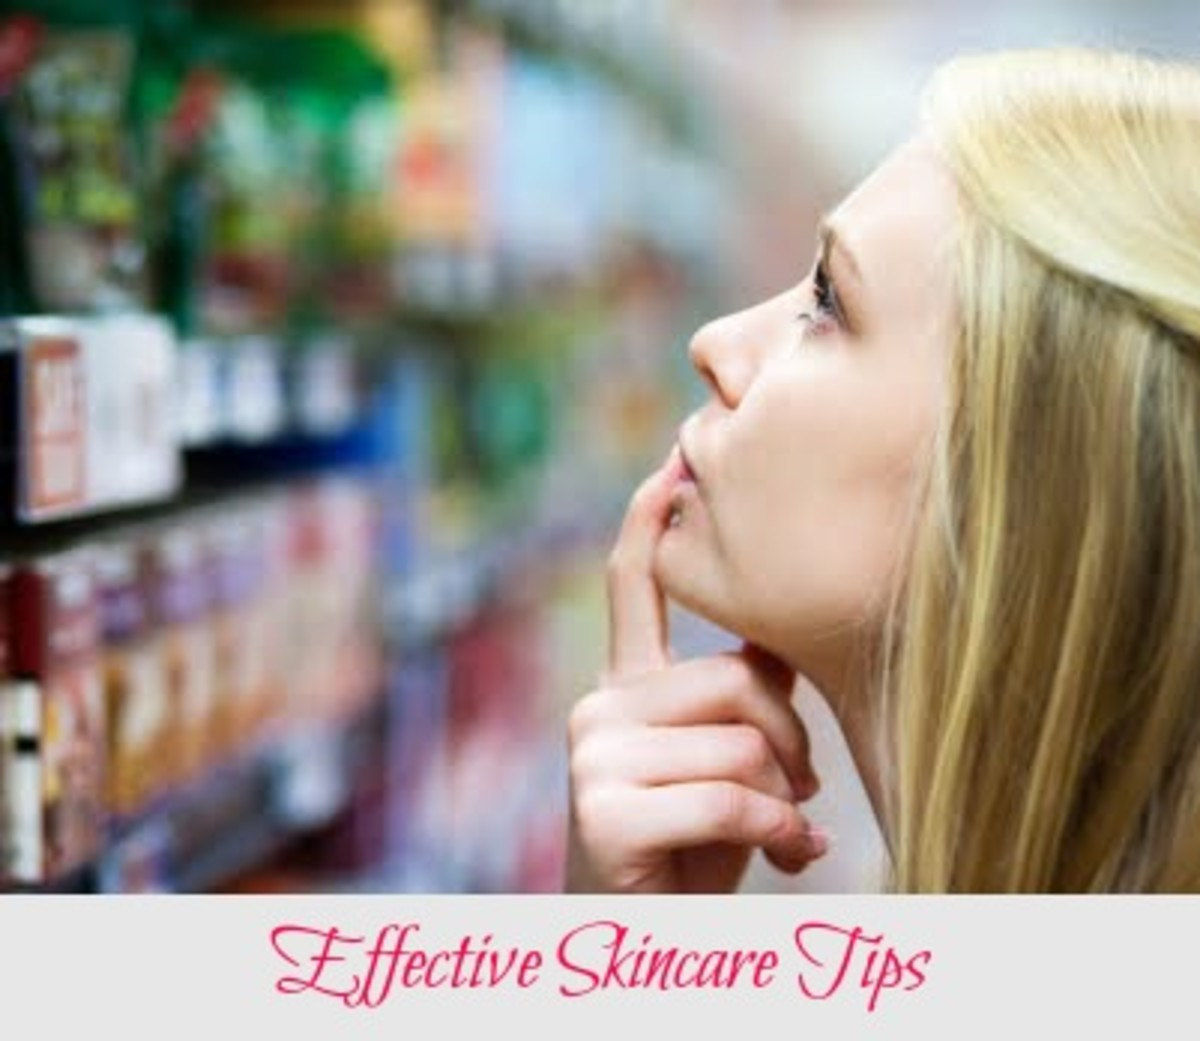 Effective Skincare Tips